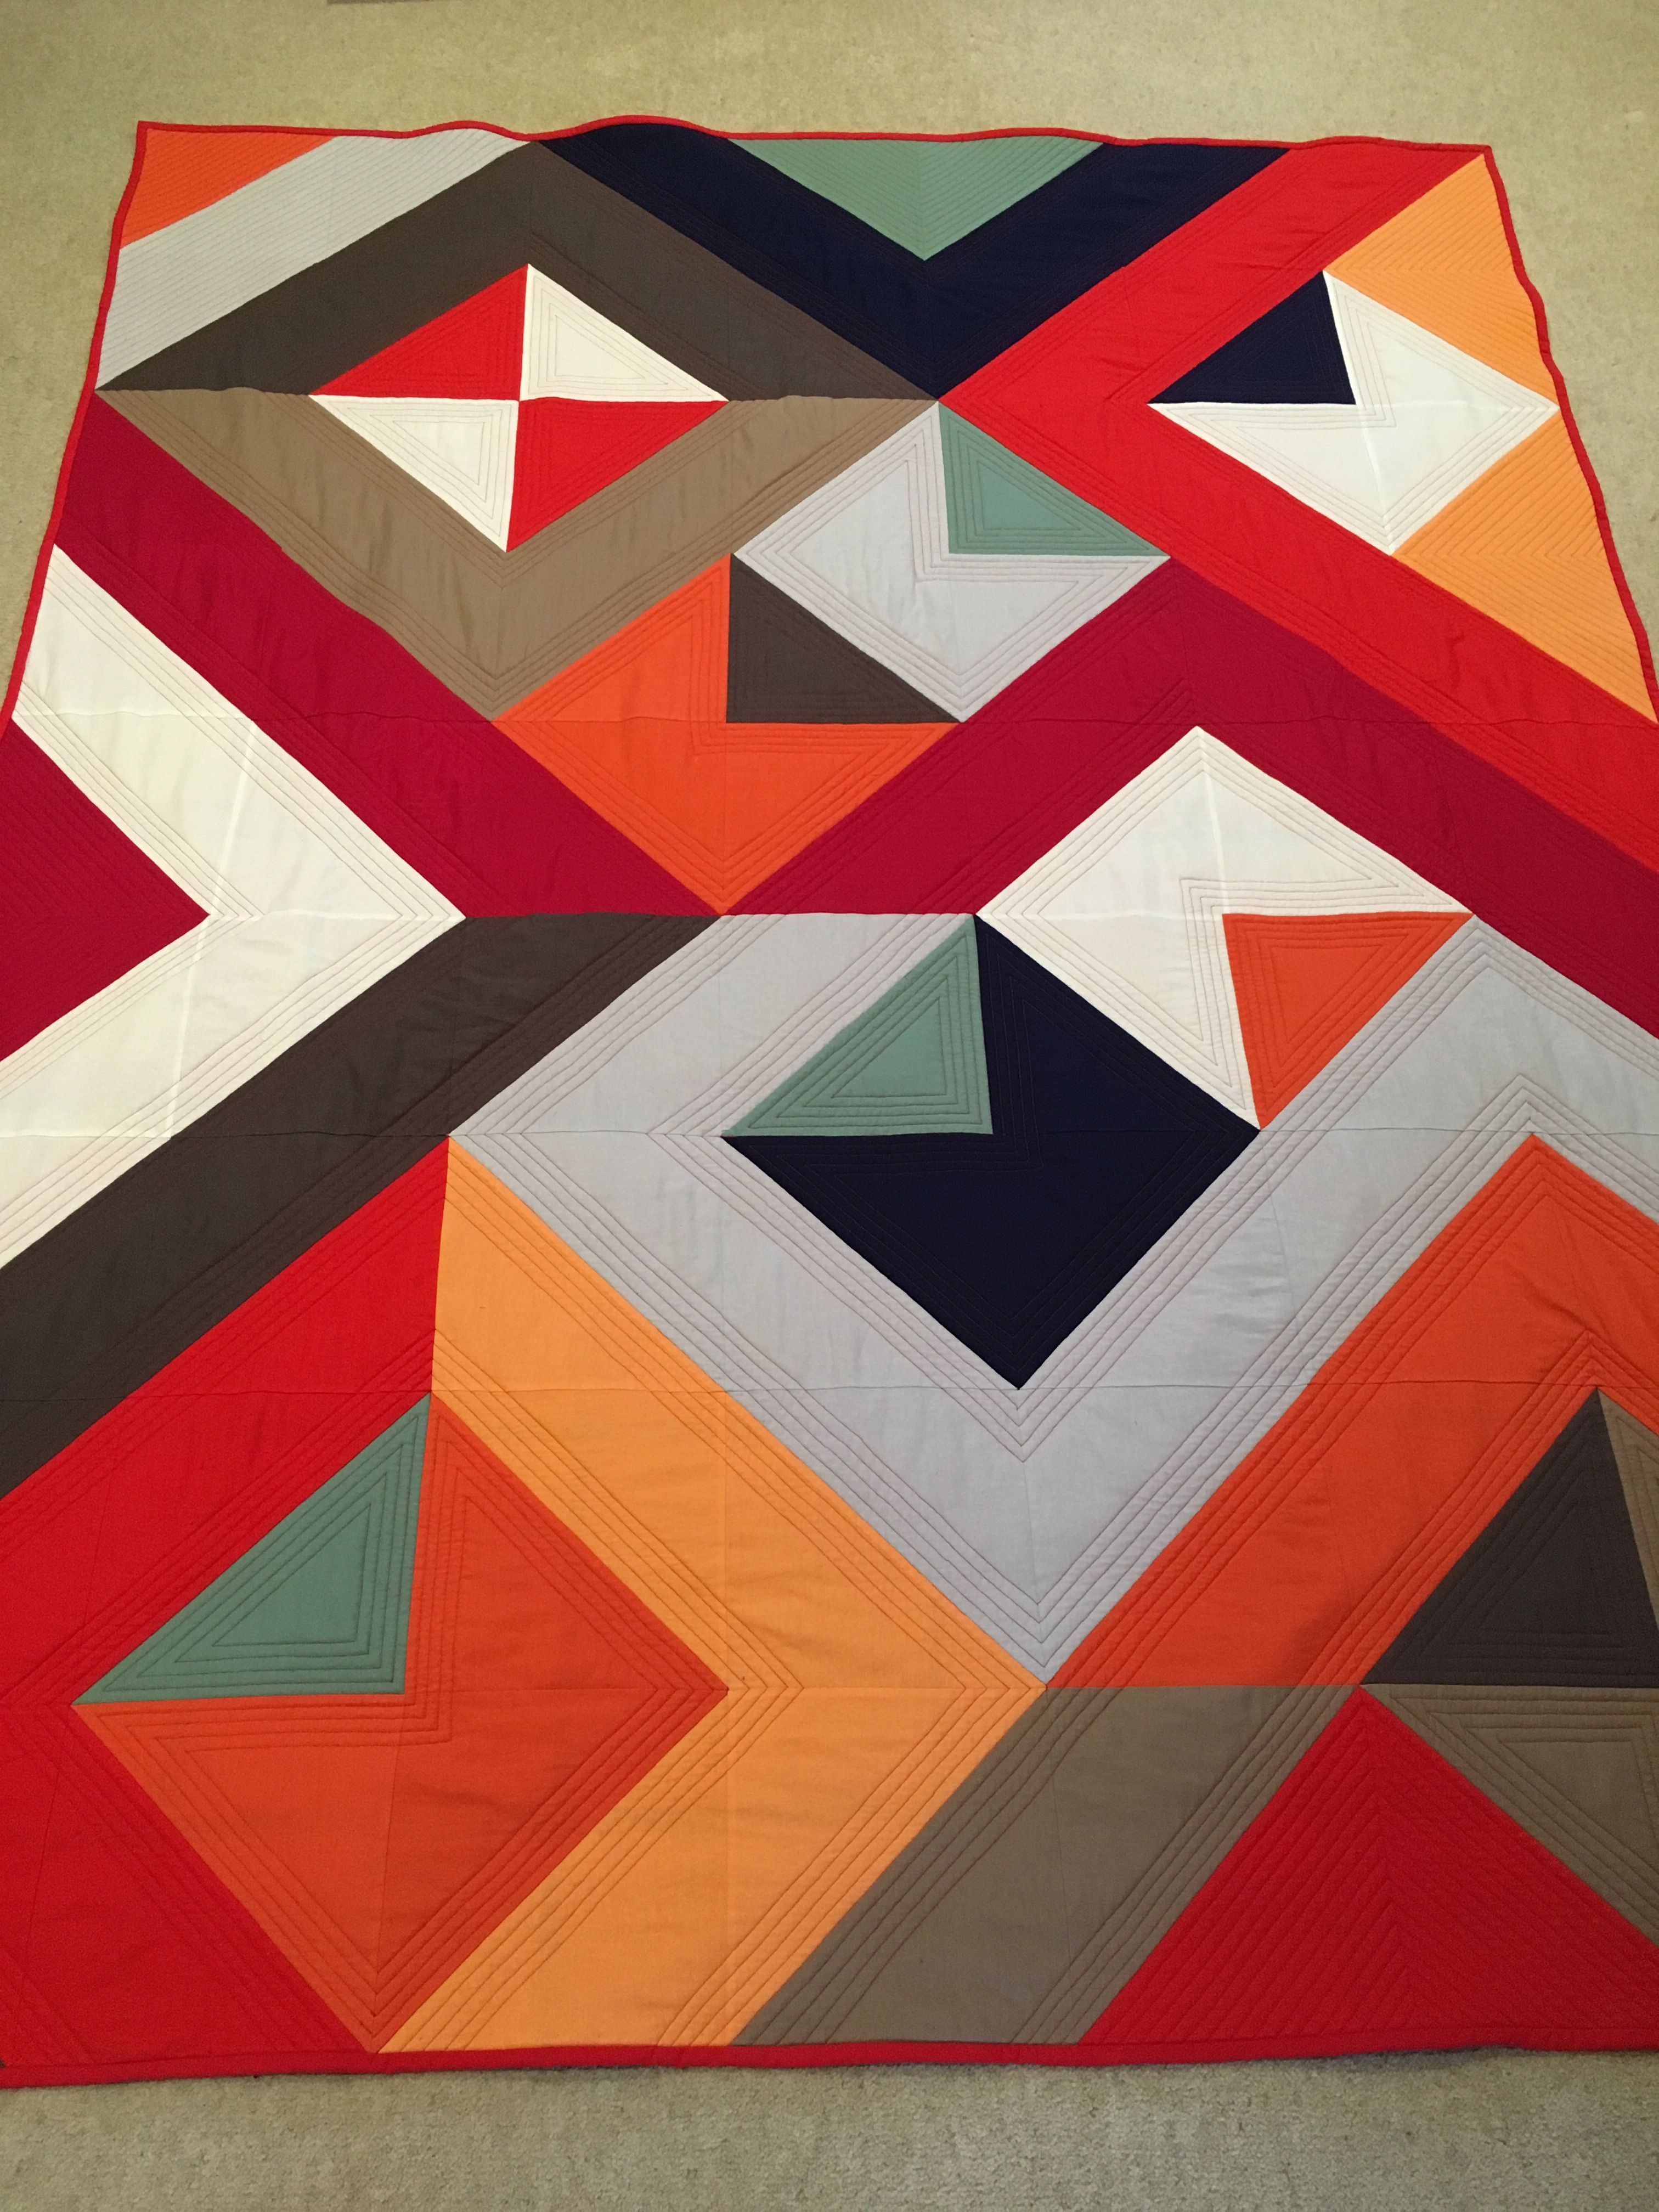 Ryan S Quilt Modern Quilt Patterns Colorful Quilts